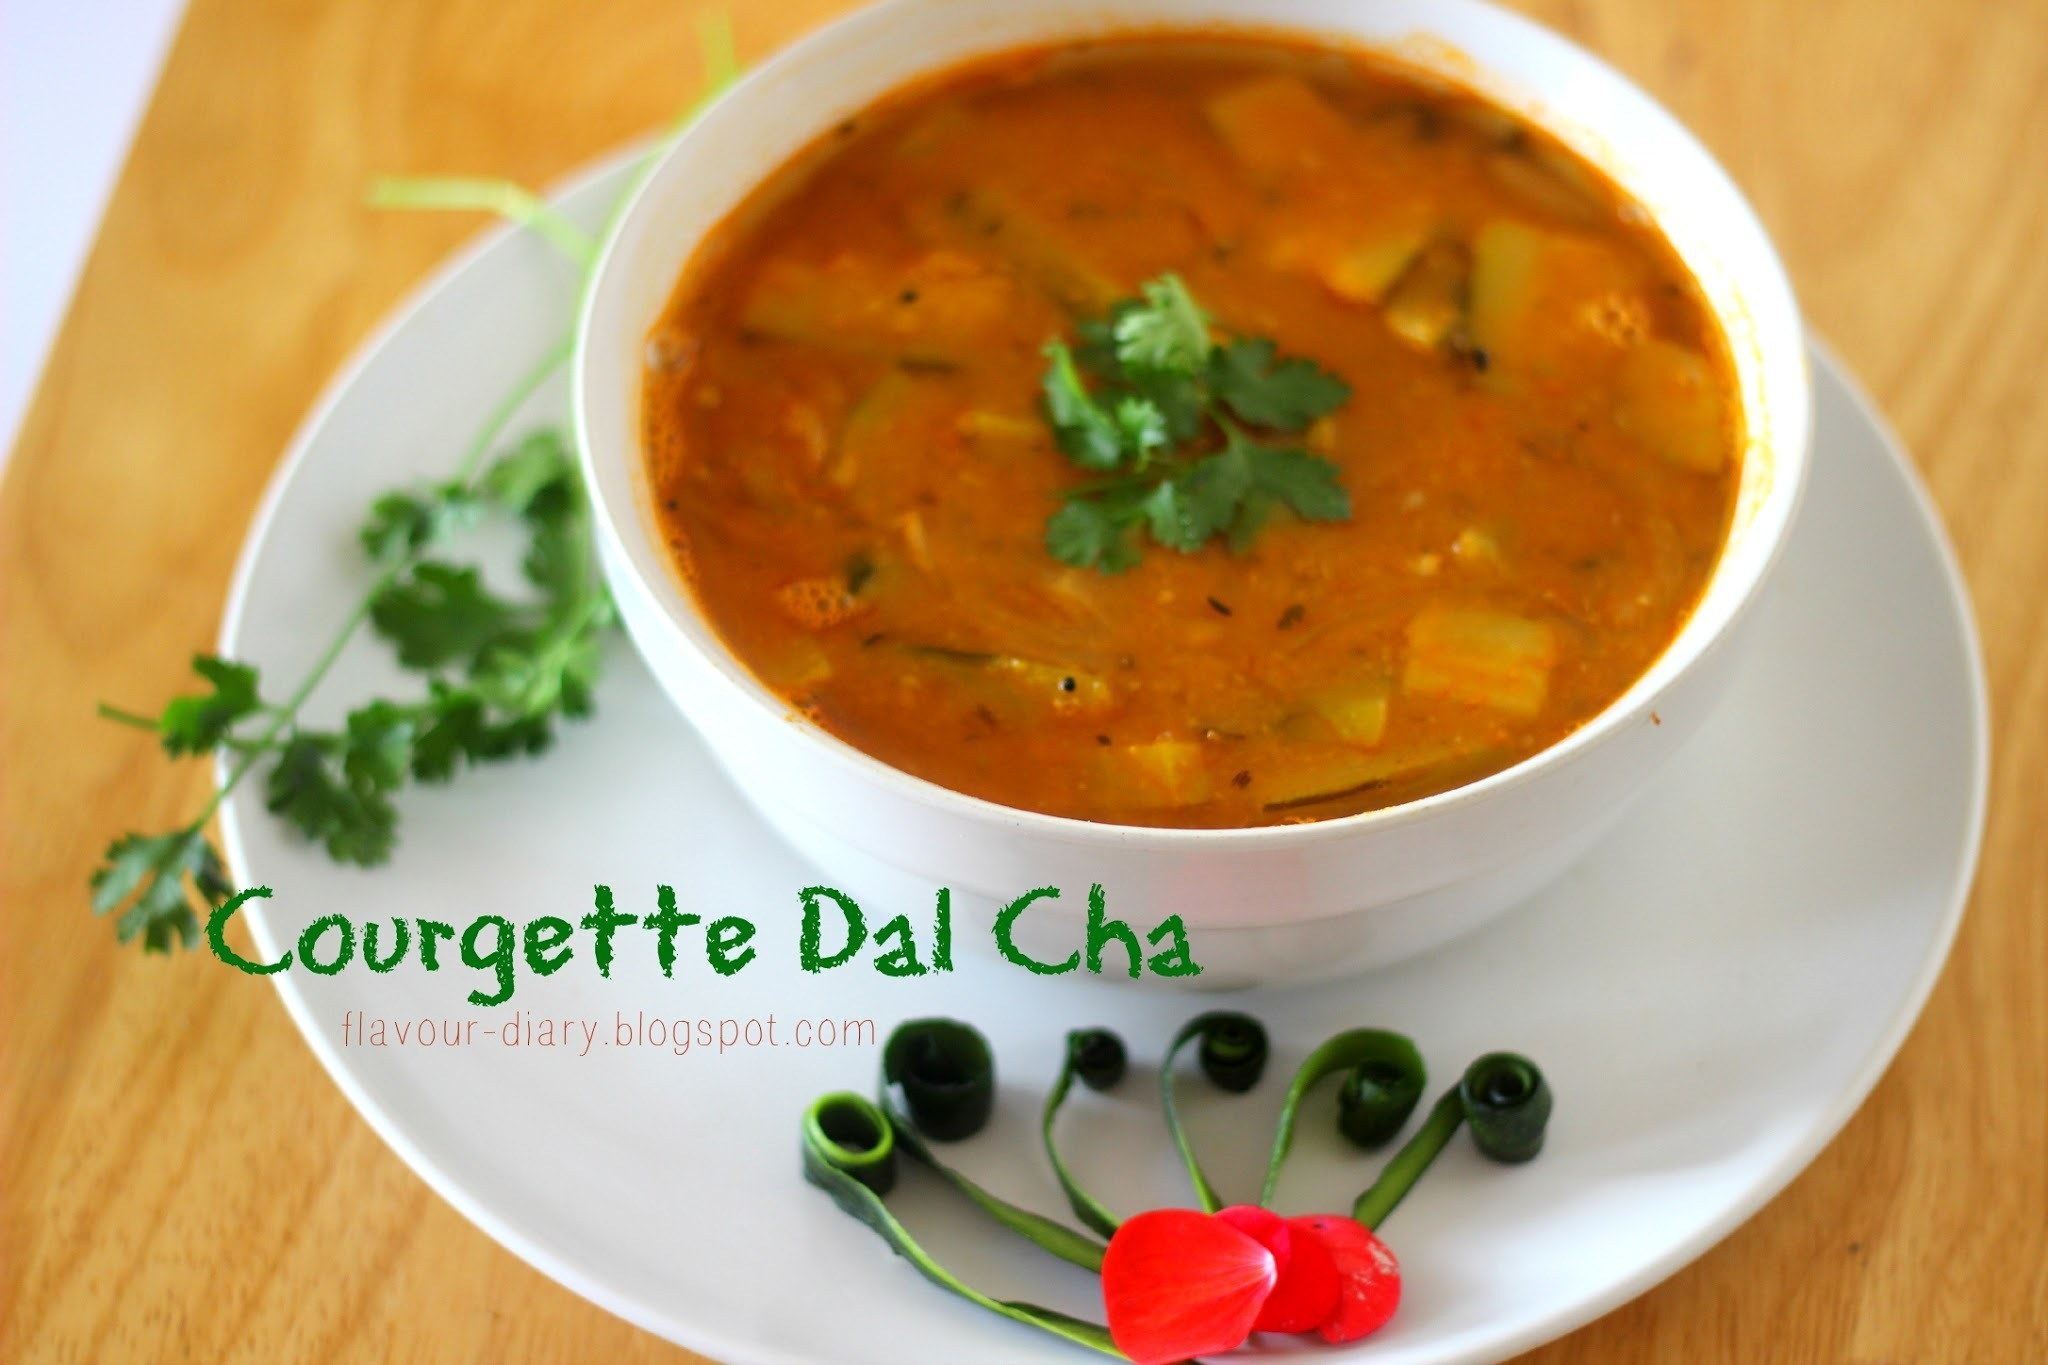 Courgette Dal Cha / Courgette Lentils Tangy Curry